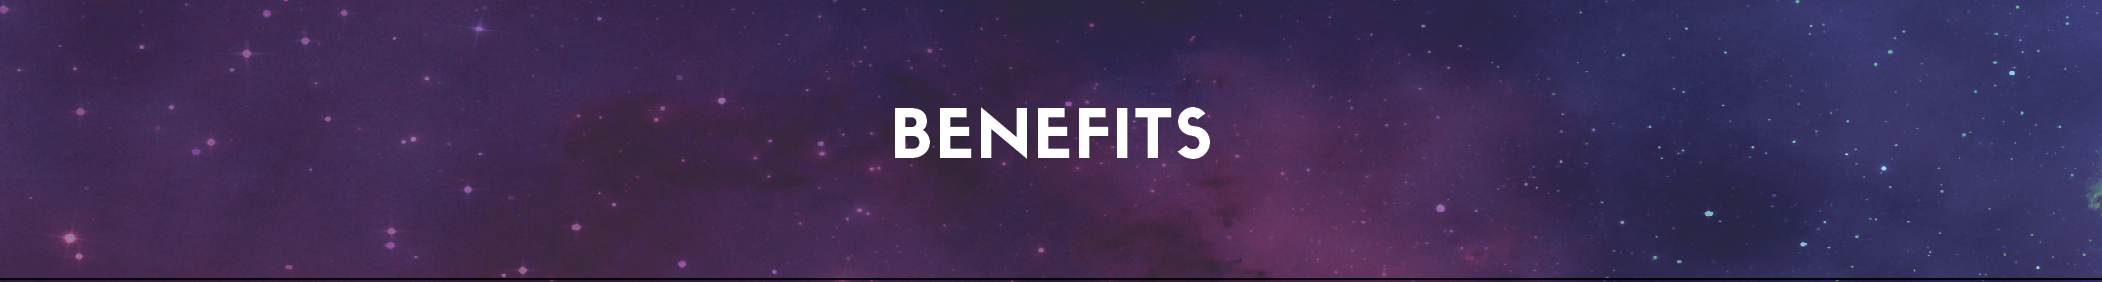 Banner EKP Benefits.png